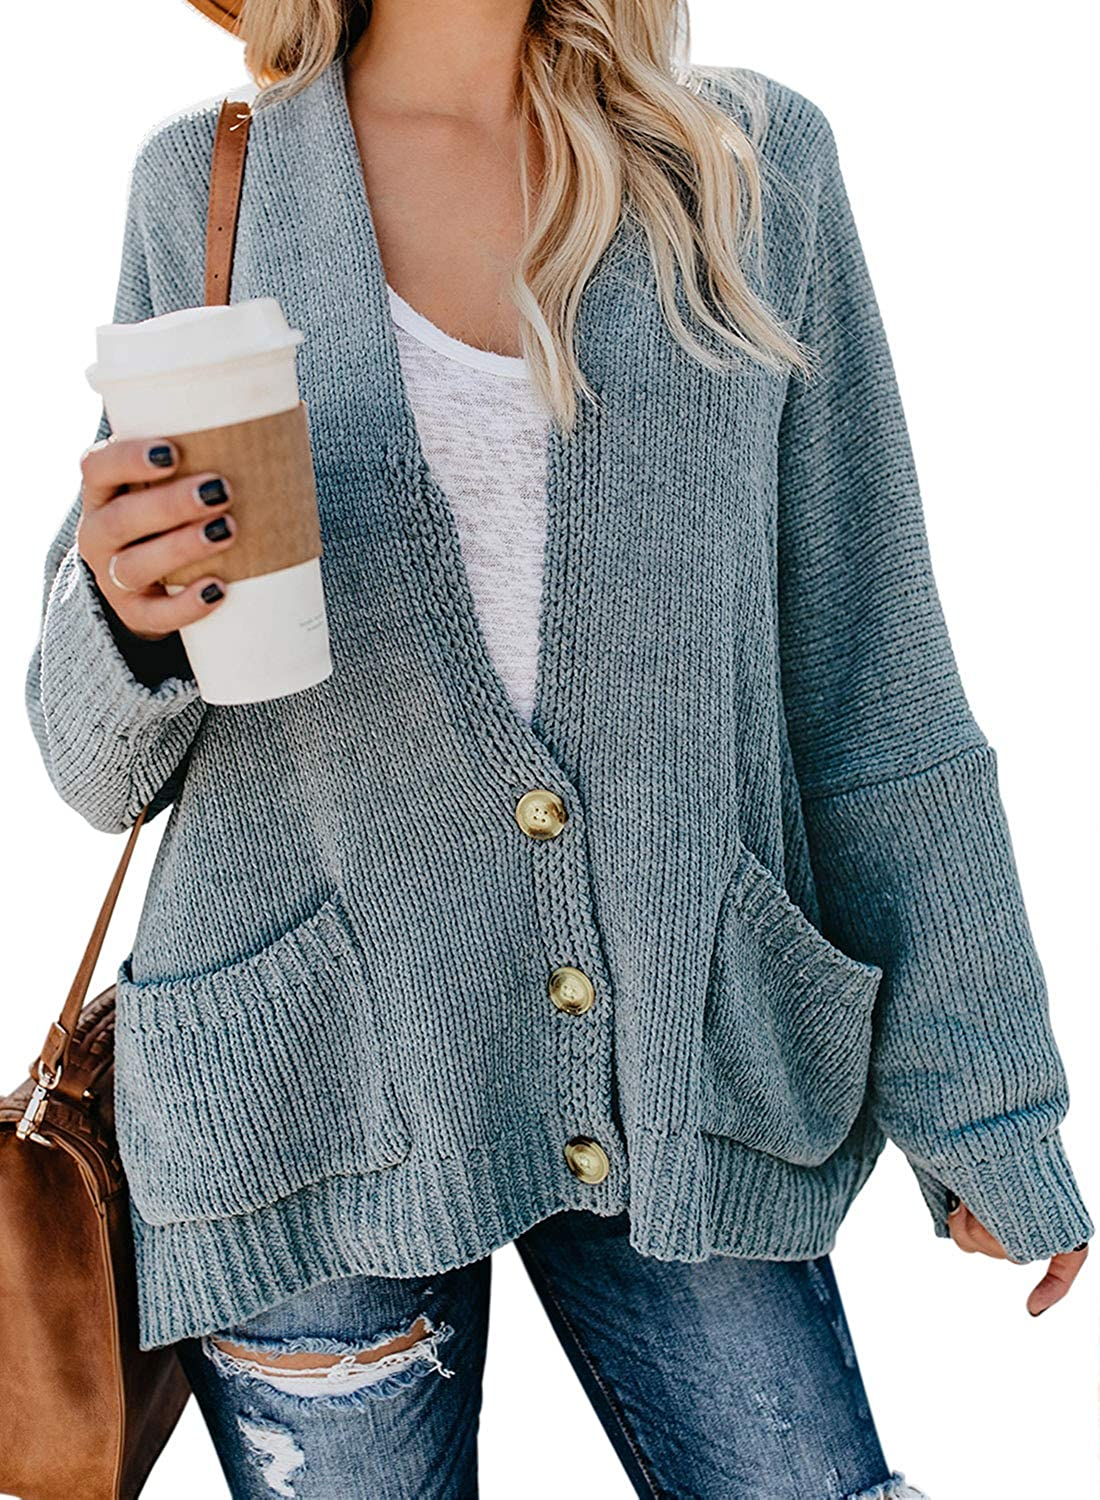 BLENCOT Womens Oversized Knit Texture Casual Loose Open Front Cardigan Sweaters